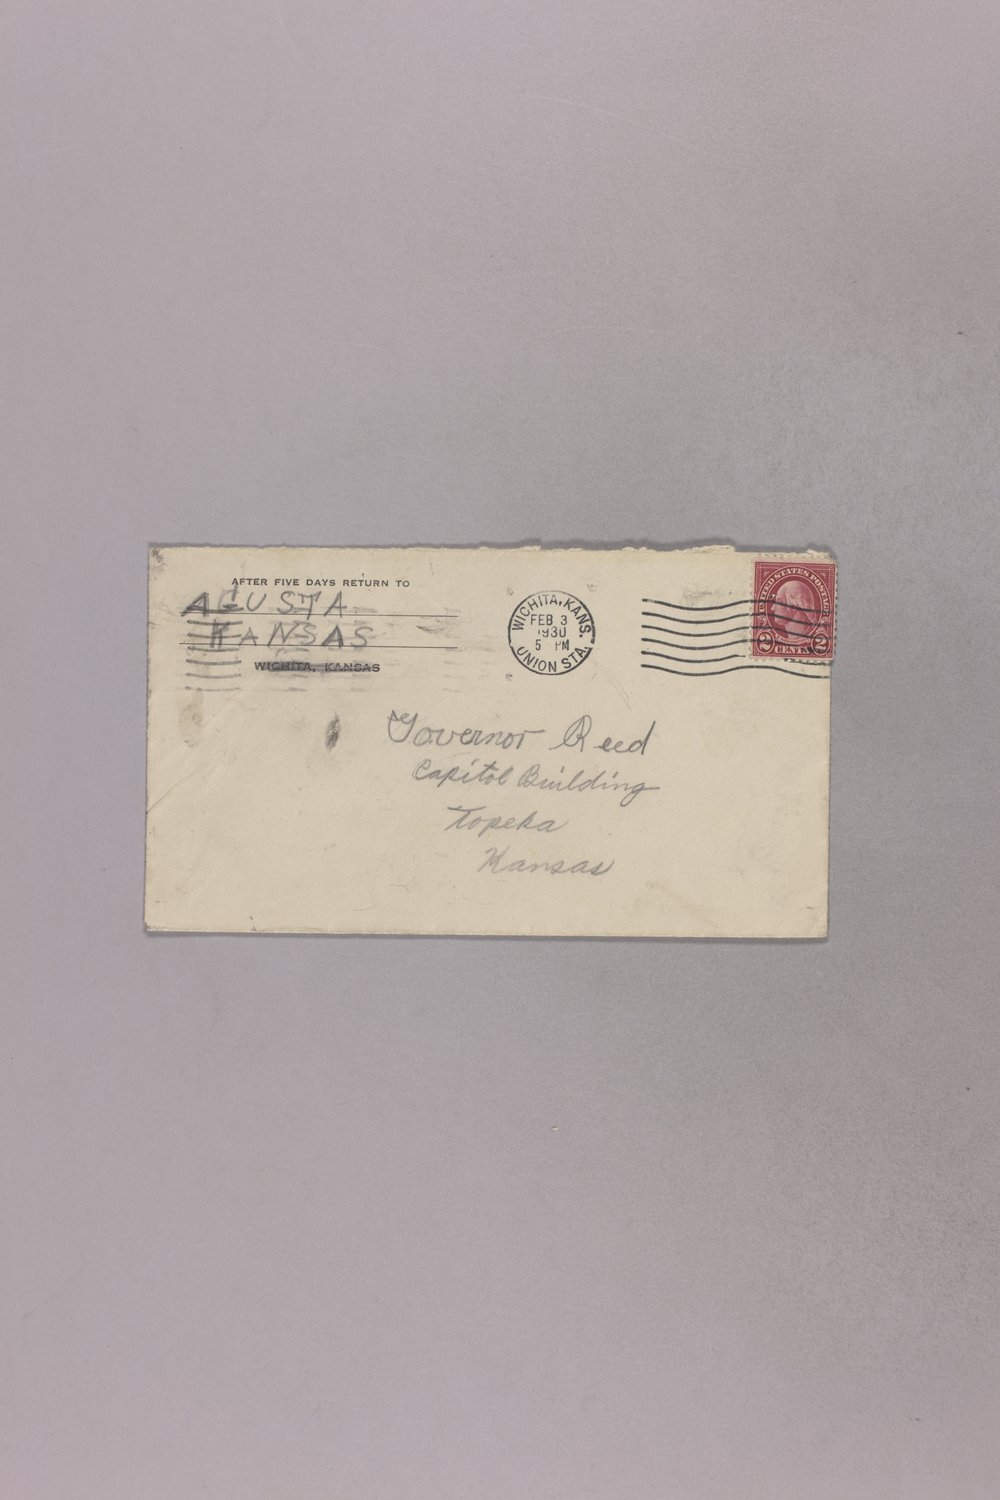 Governor Clyde M. Reed correspondence, United States Postal Service - 13